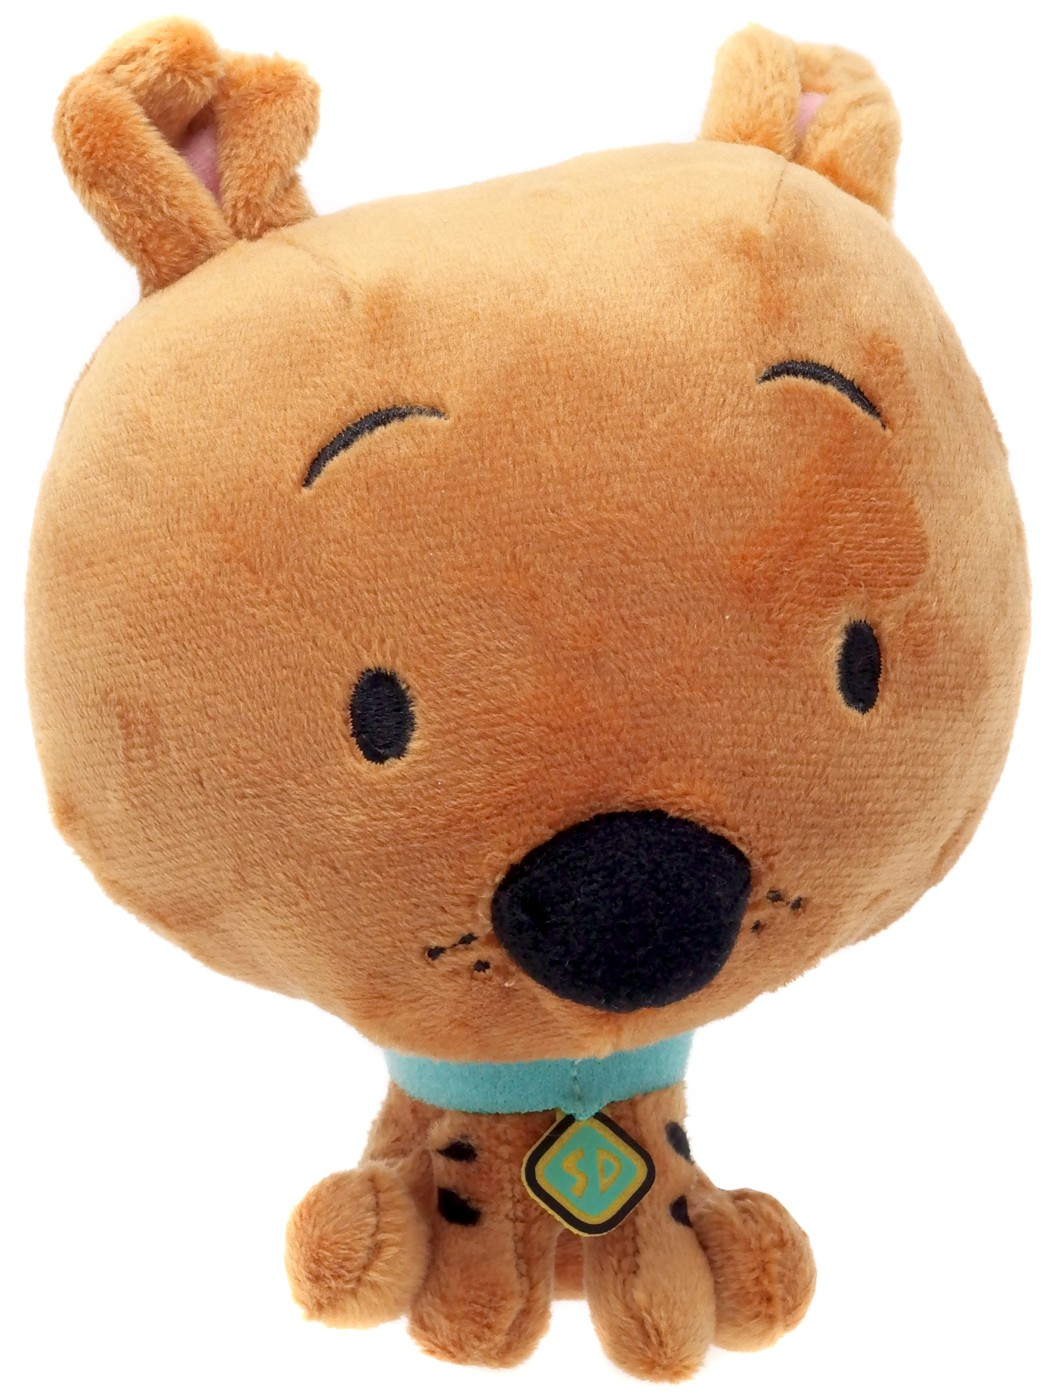 scooby doo stuffed animal pillow stands